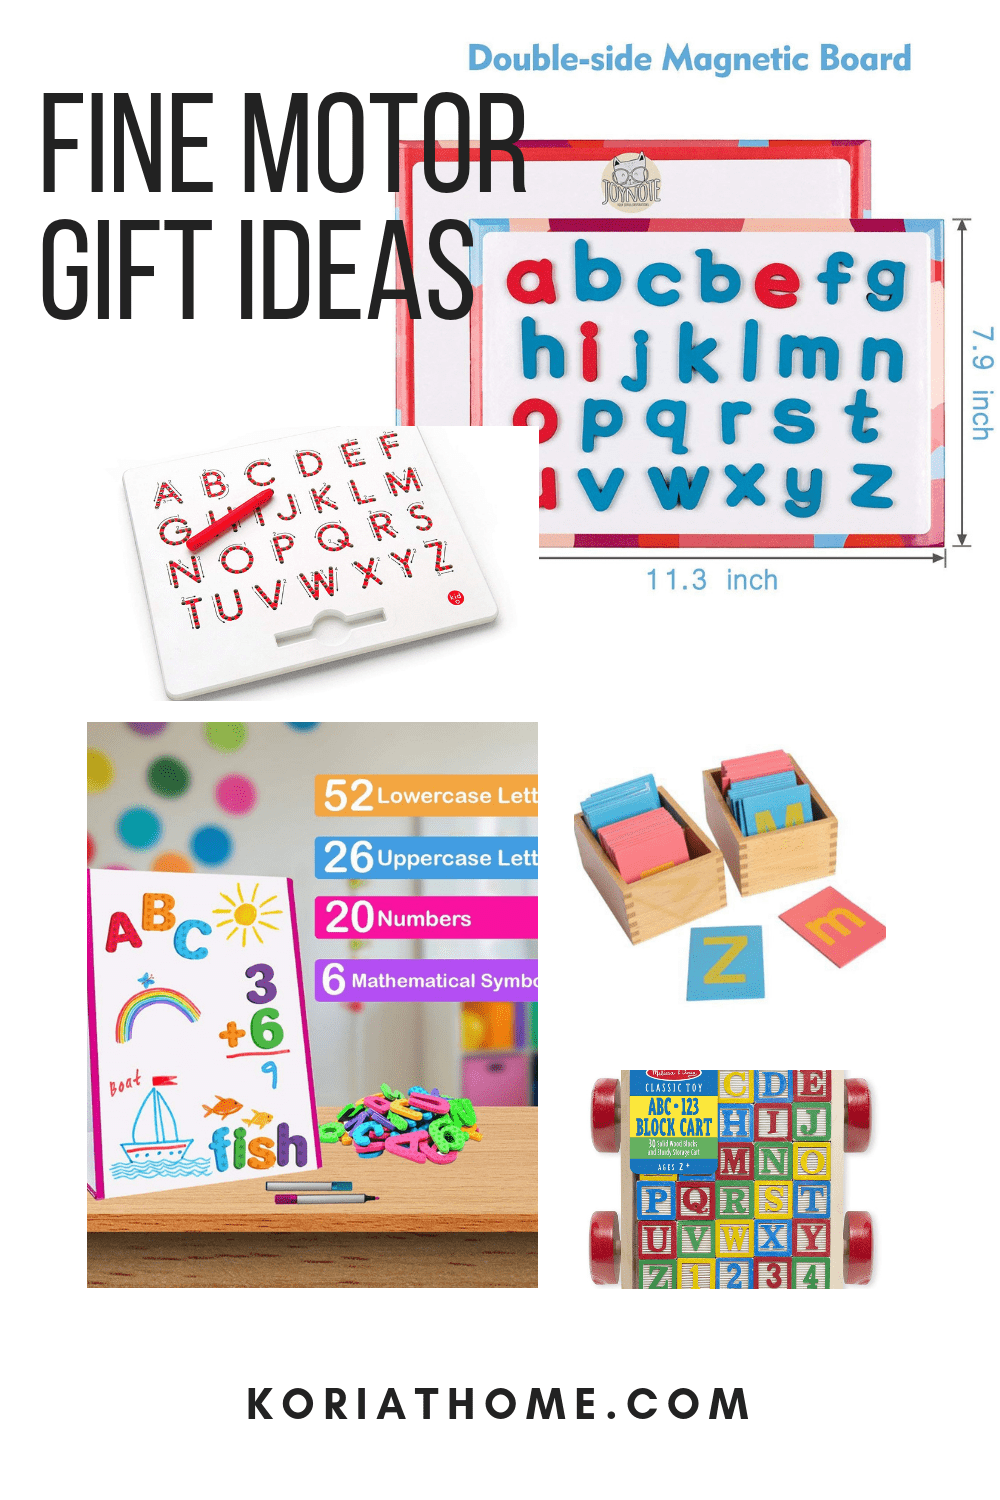 The Ultimate Autism Gift Guide: Ideas for Multiple Ages and Price Ranges 4